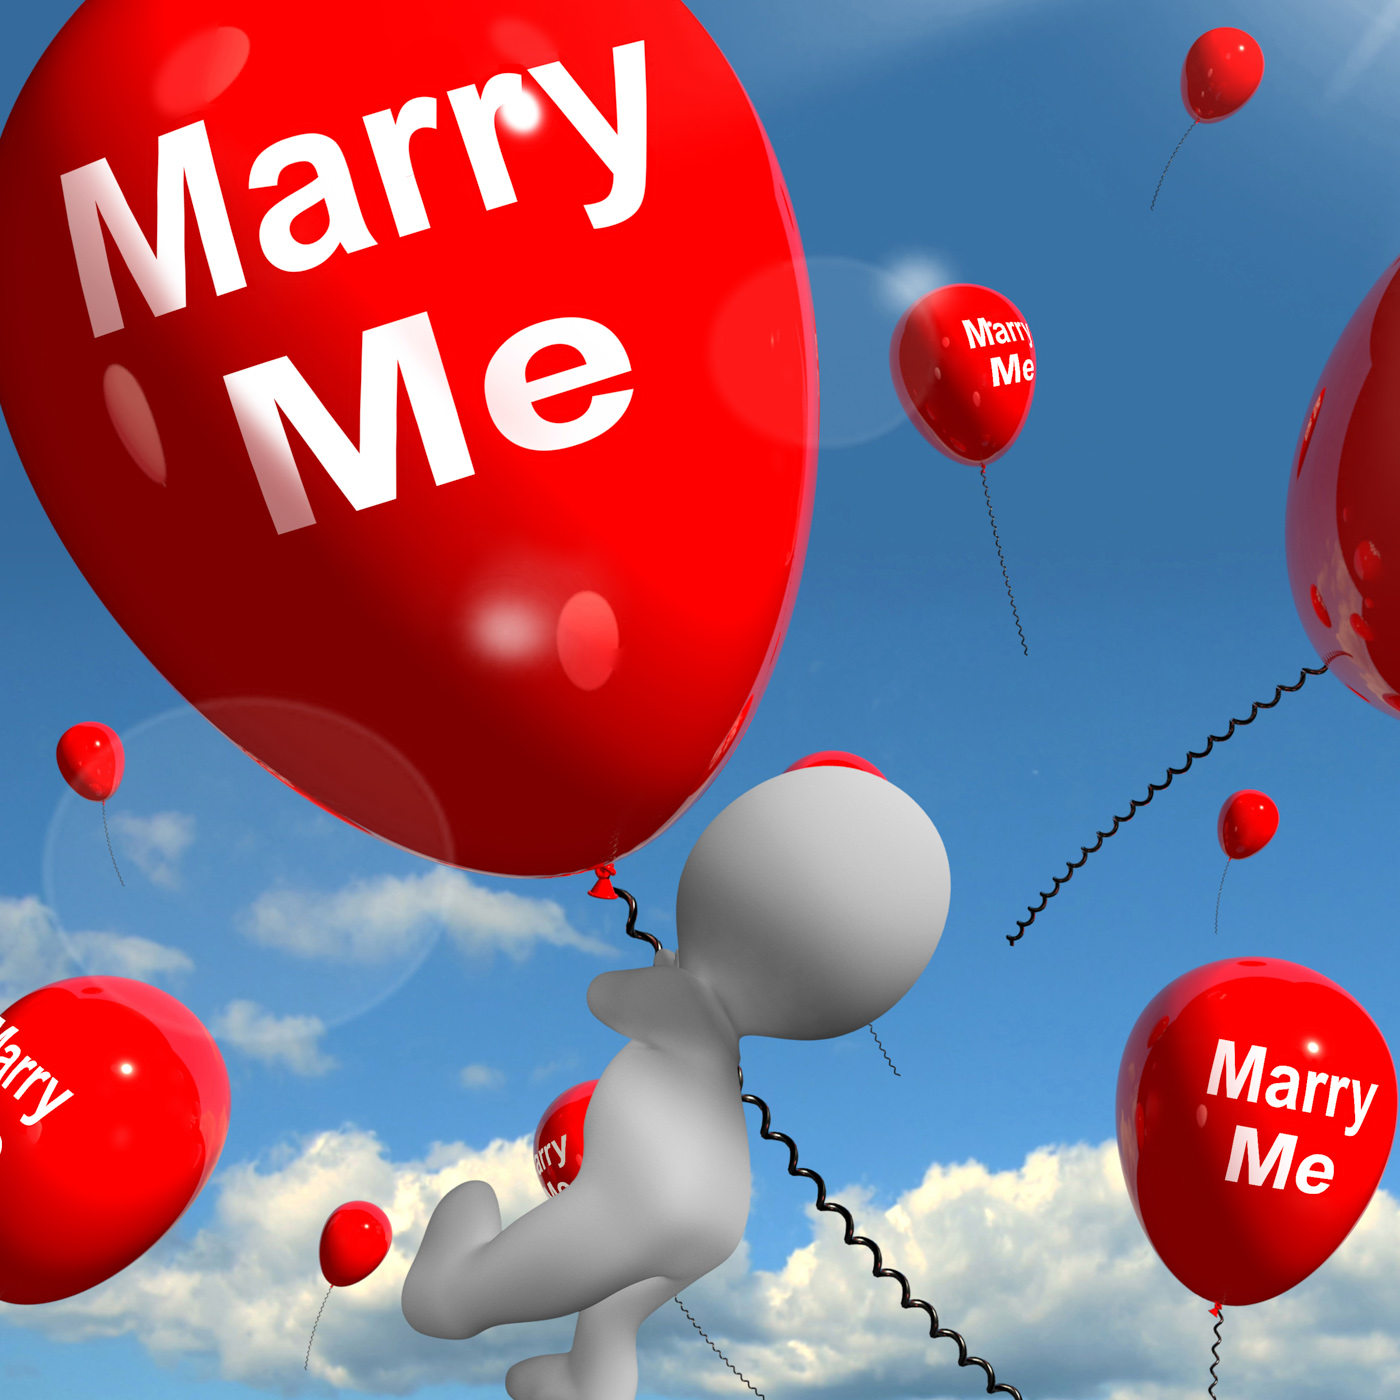 Marry me balloons represents engagement proposal for lovers photo